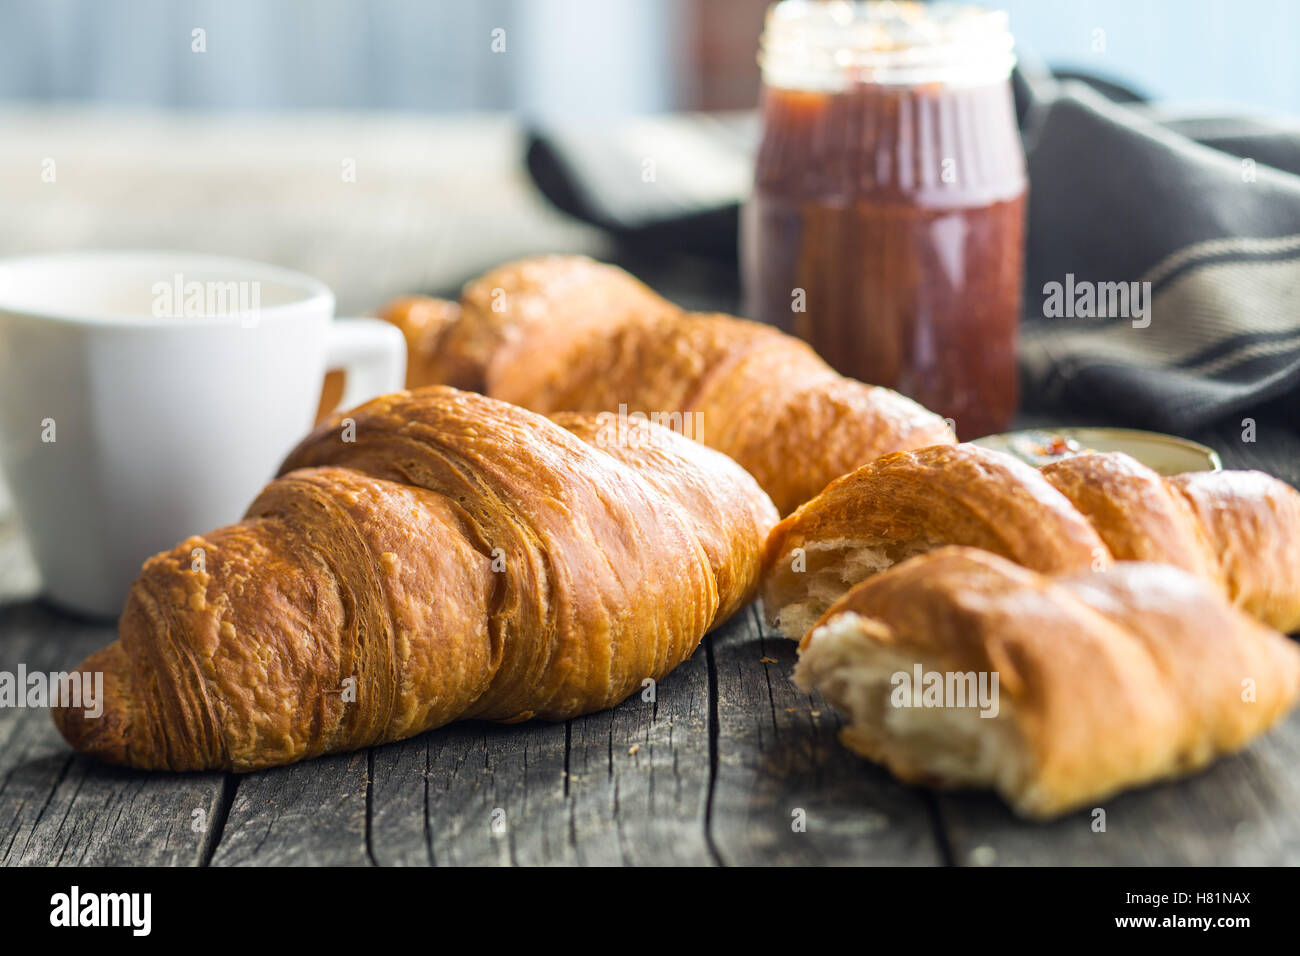 Tasty buttery croissants on old wooden table. Stock Photo